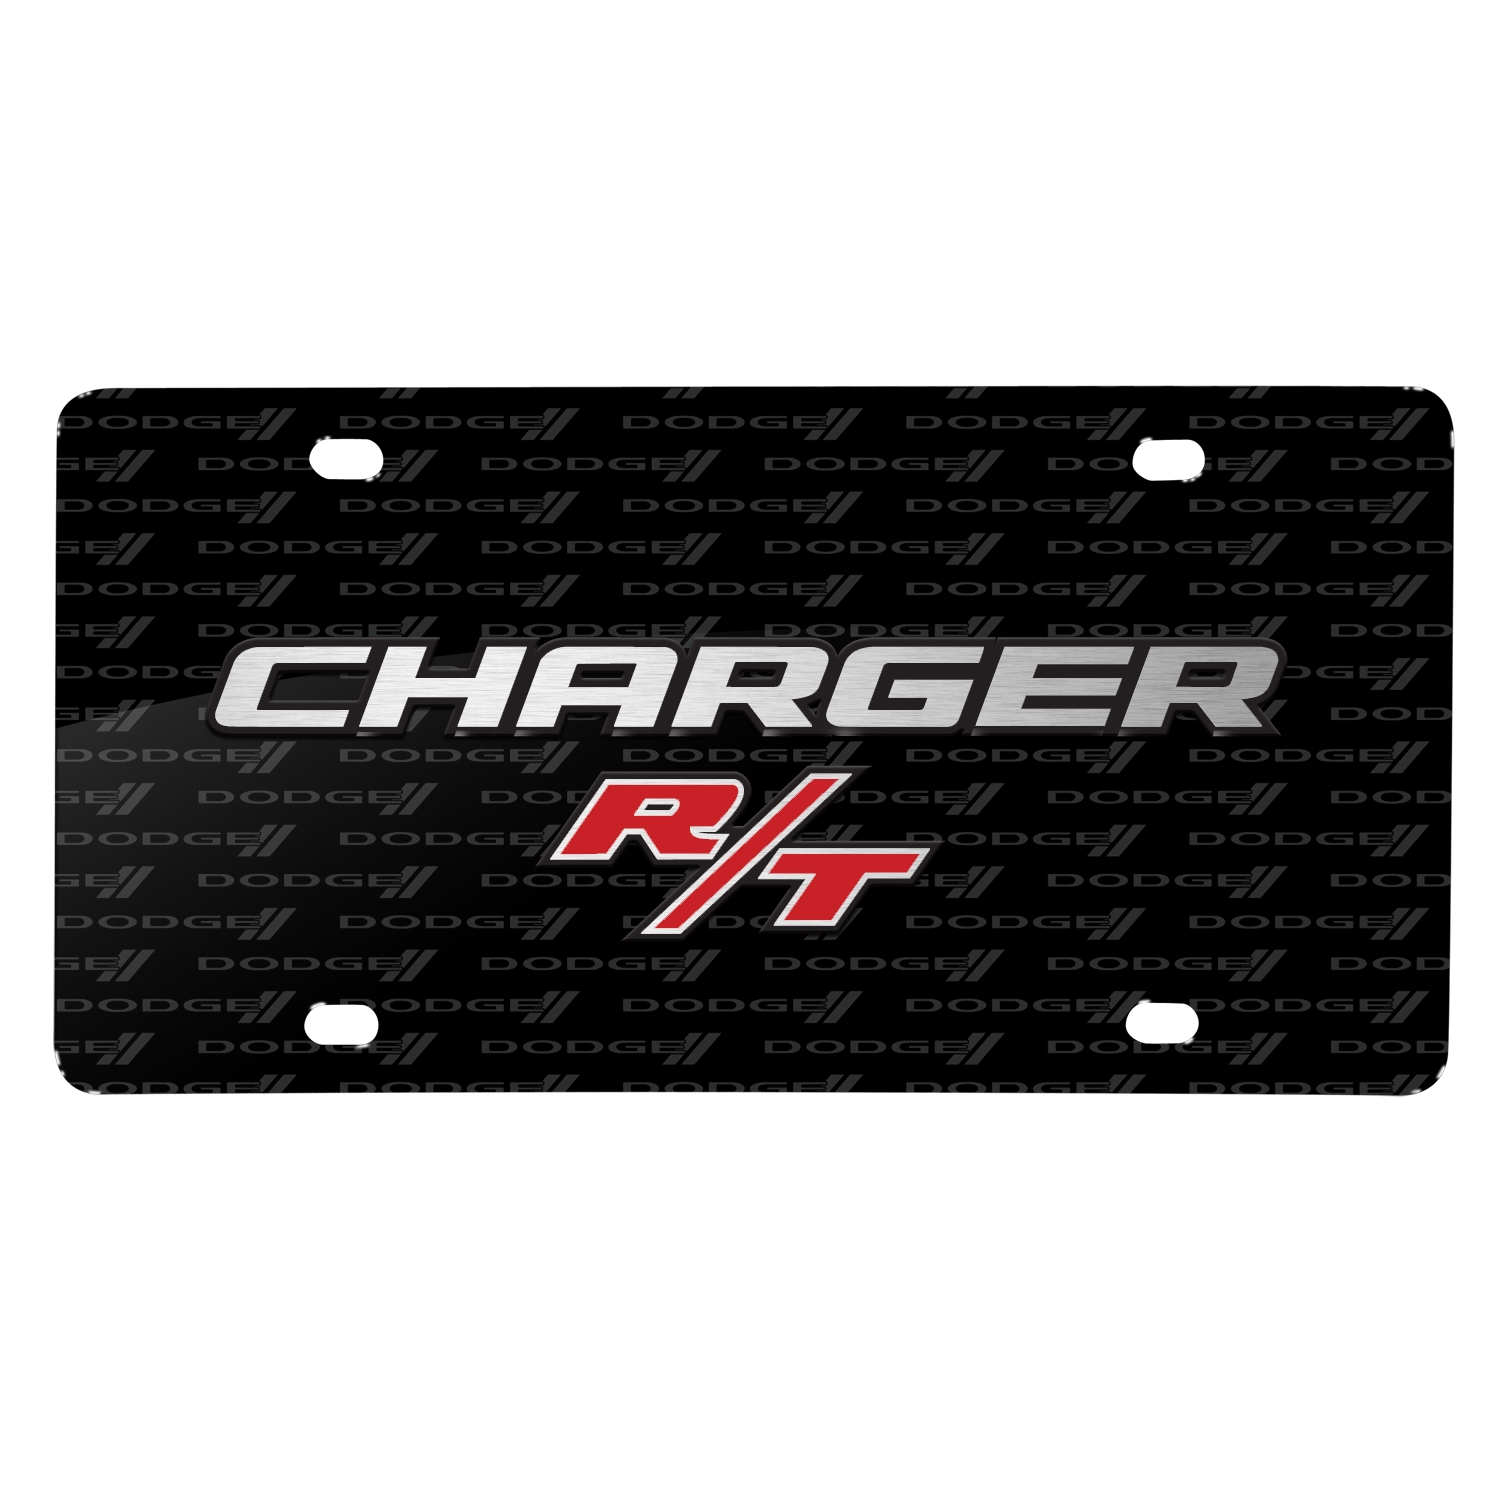 Dodge Charger R/T 3D Logo on Logo Pattern Black Aluminum License Plate